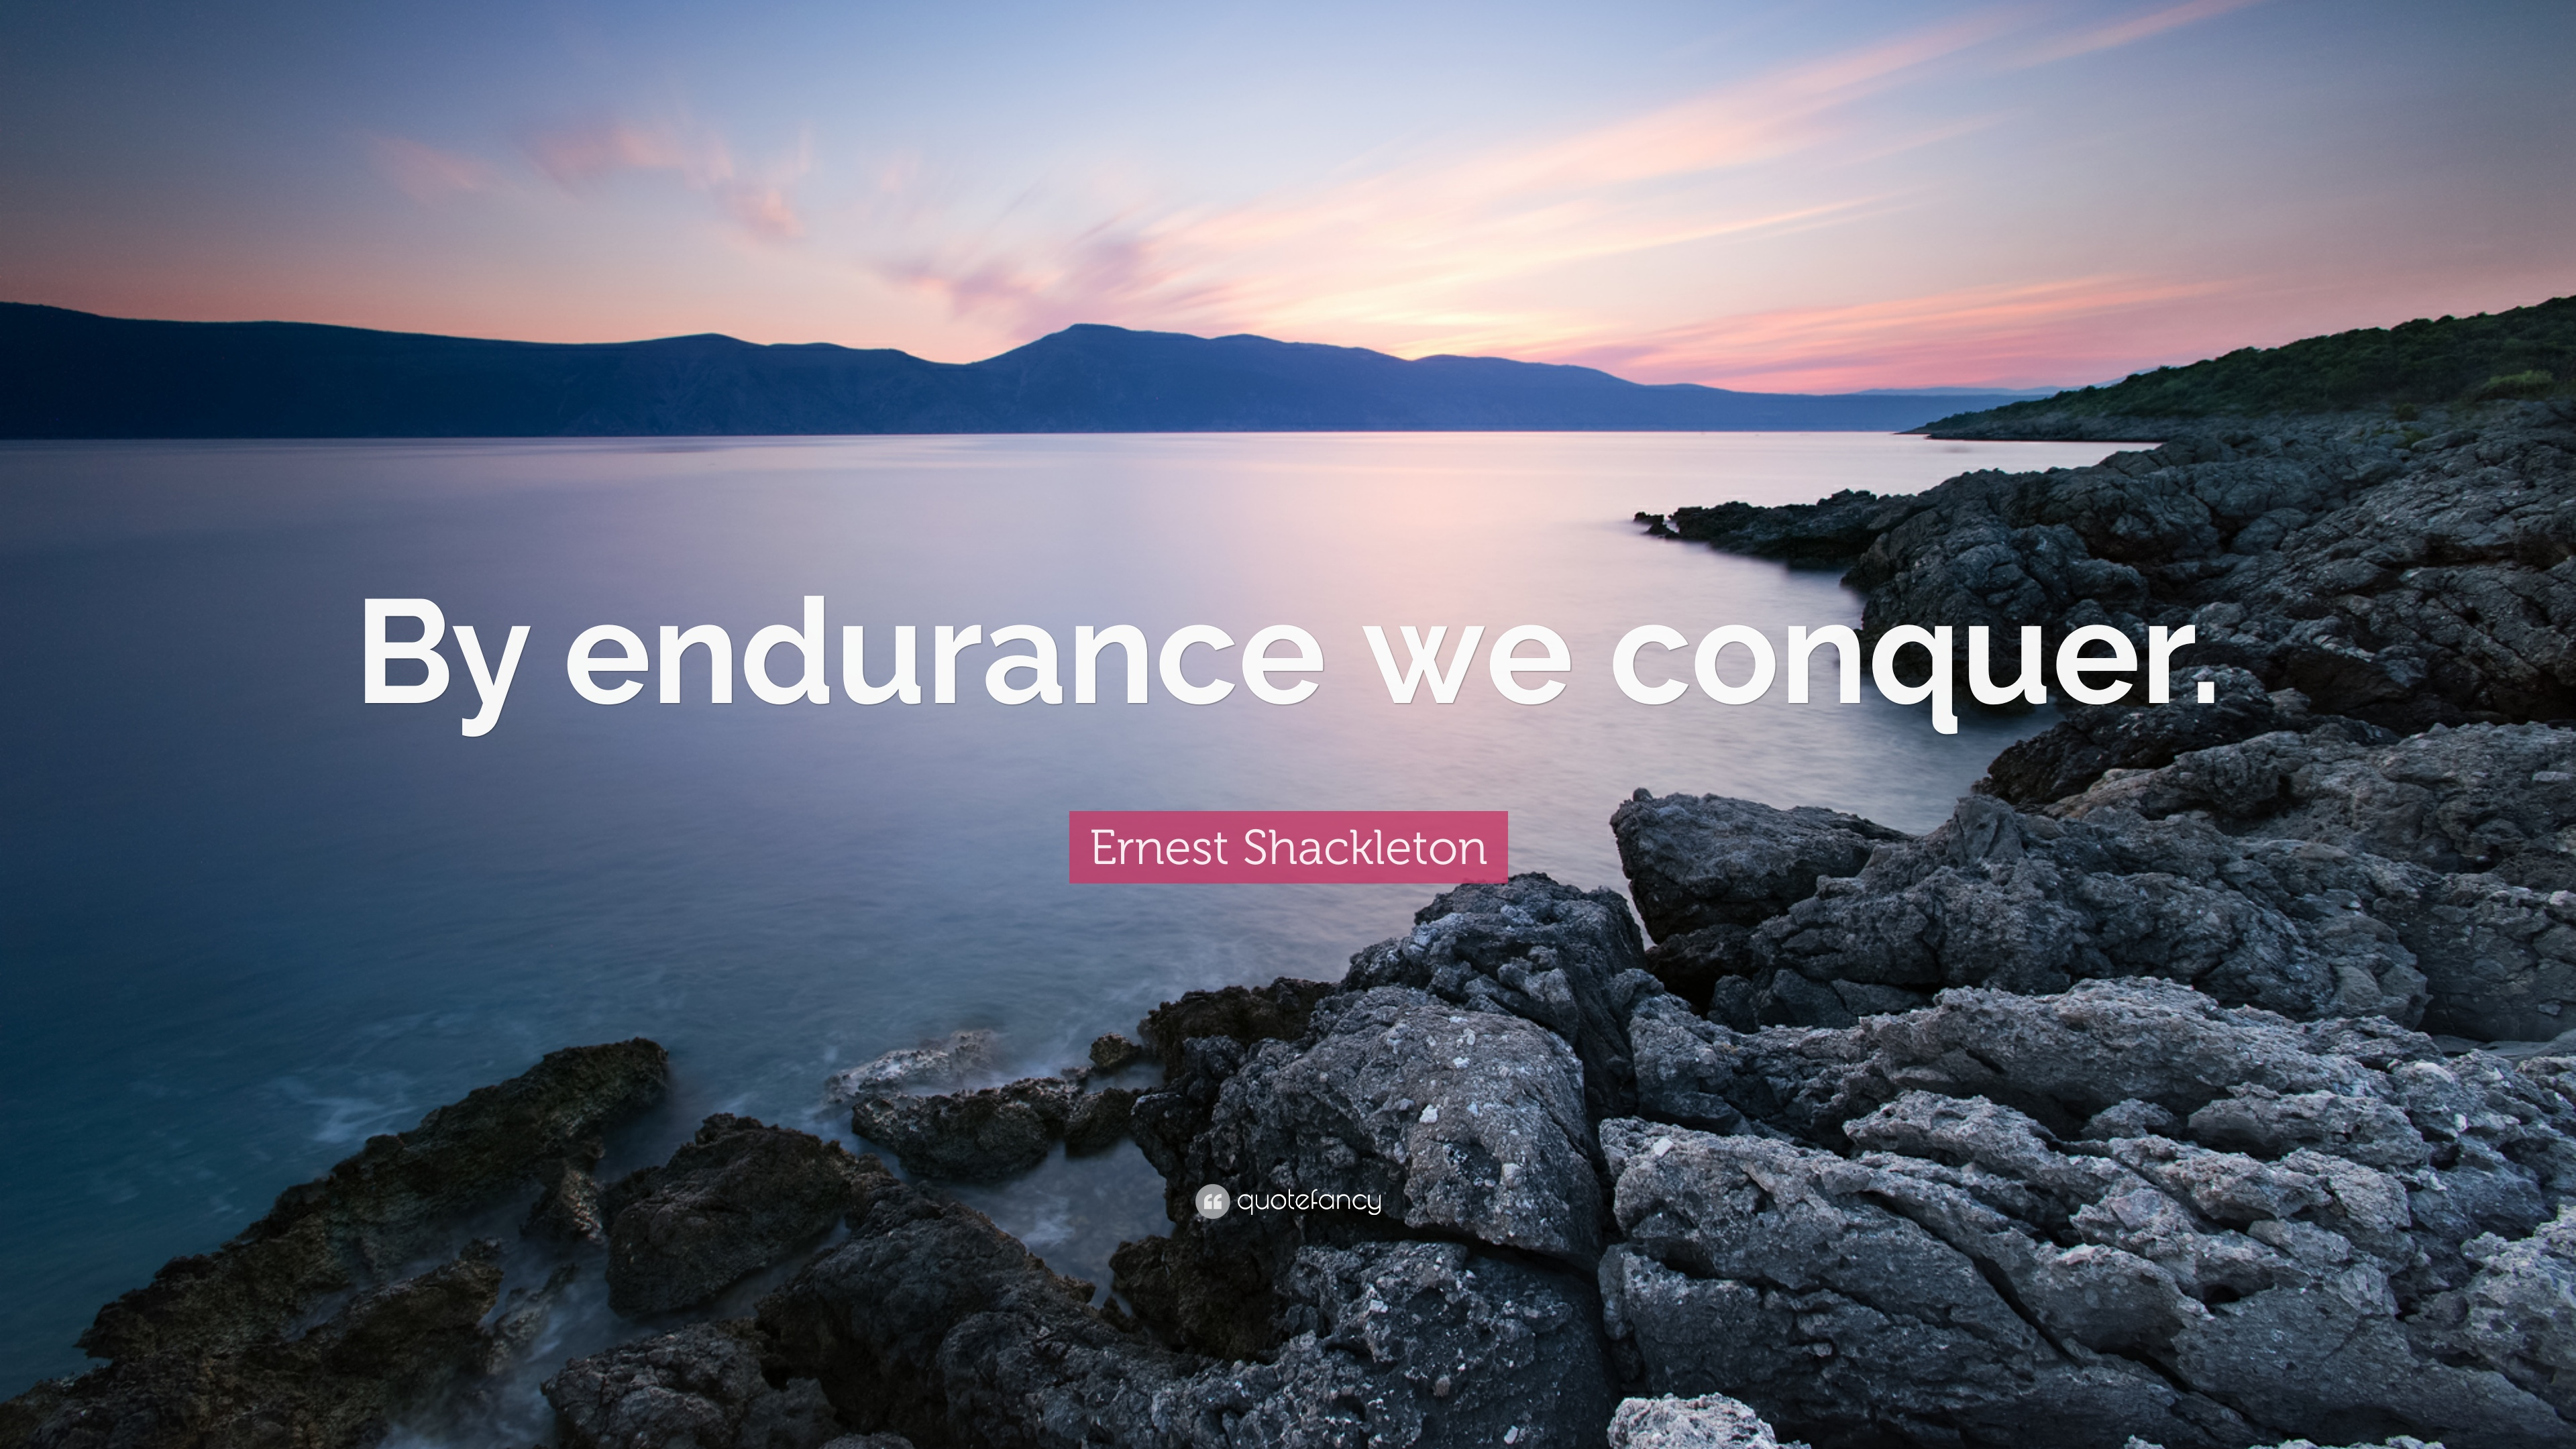 Endurance Quotes Ernest Shackleton Quotes 21 Wallpapers  Quotefancy